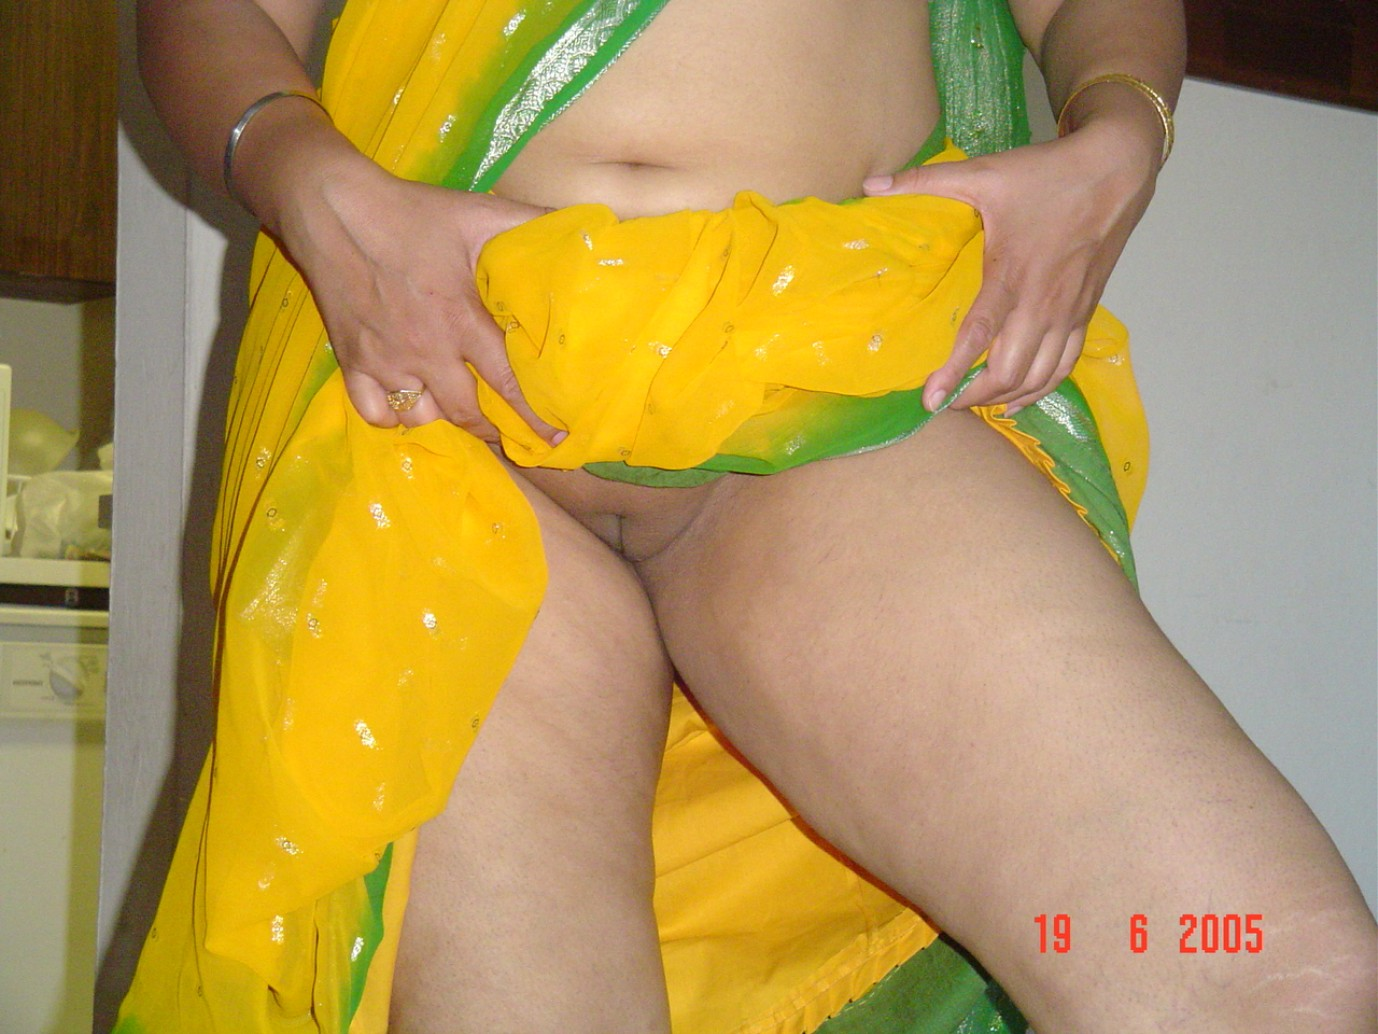 Lankan girls escort naked